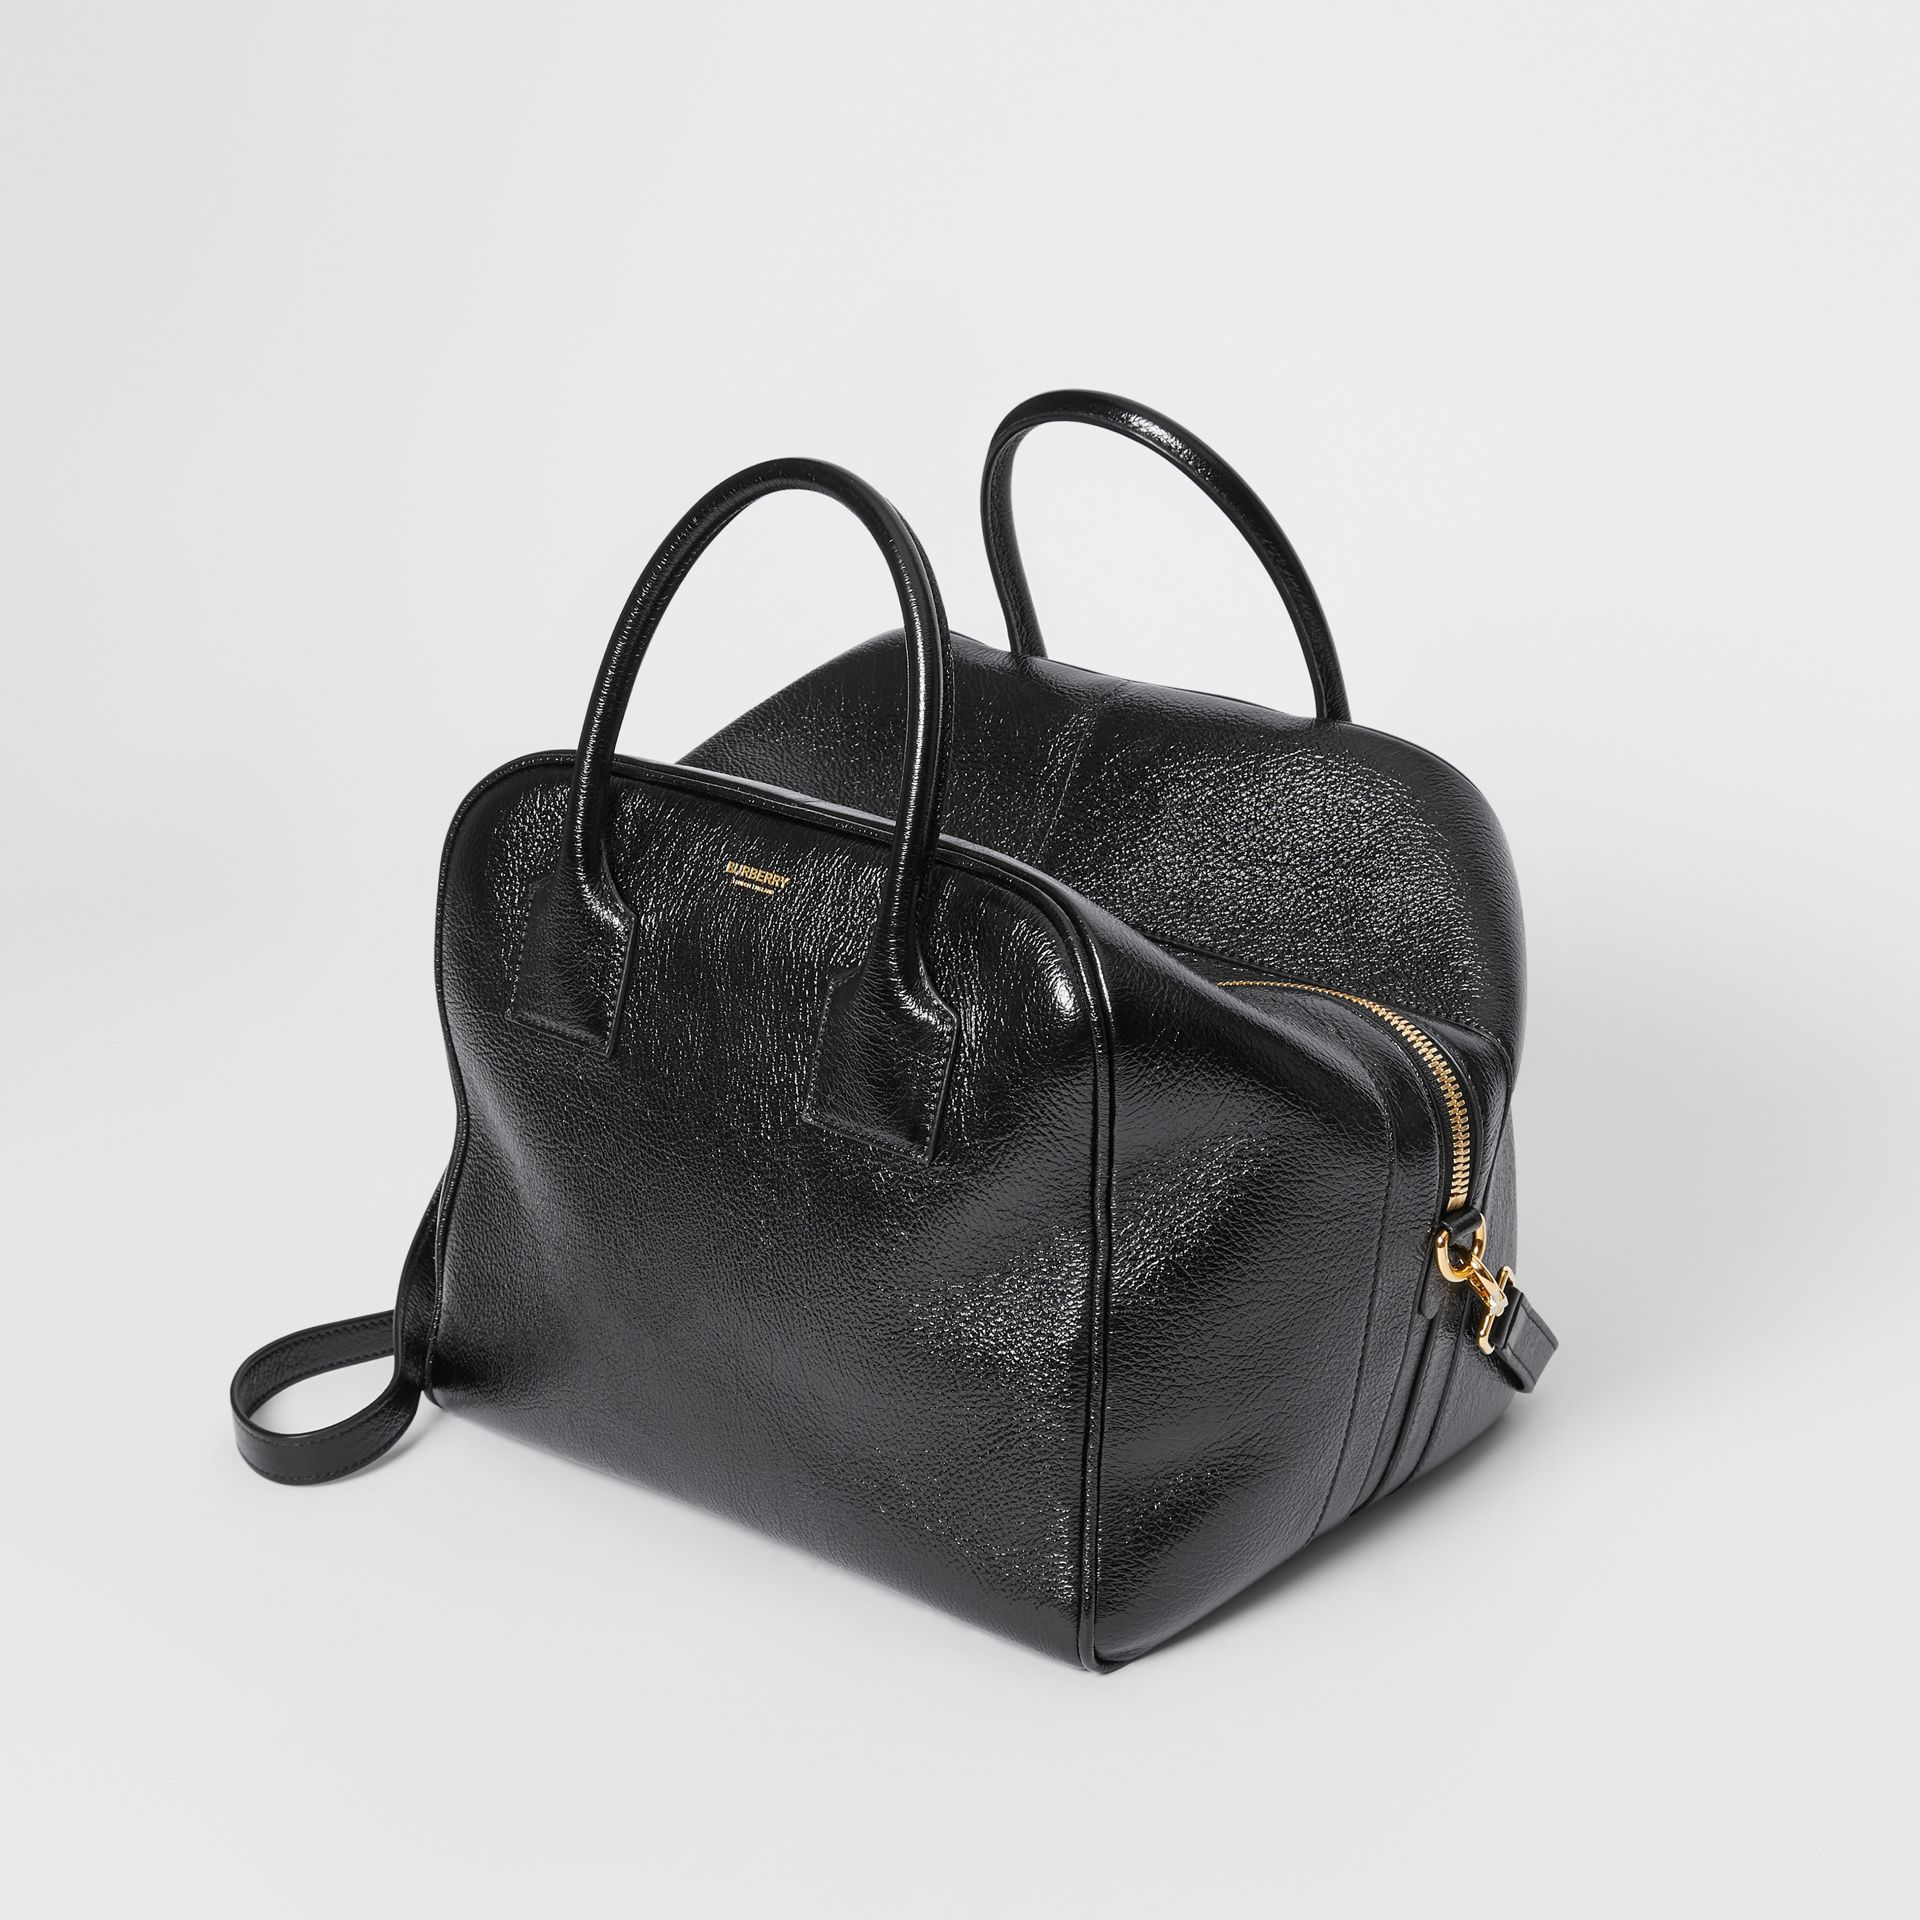 Medium Lambskin Cube Bag in Black - Women | Burberry Canada - gallery image 3